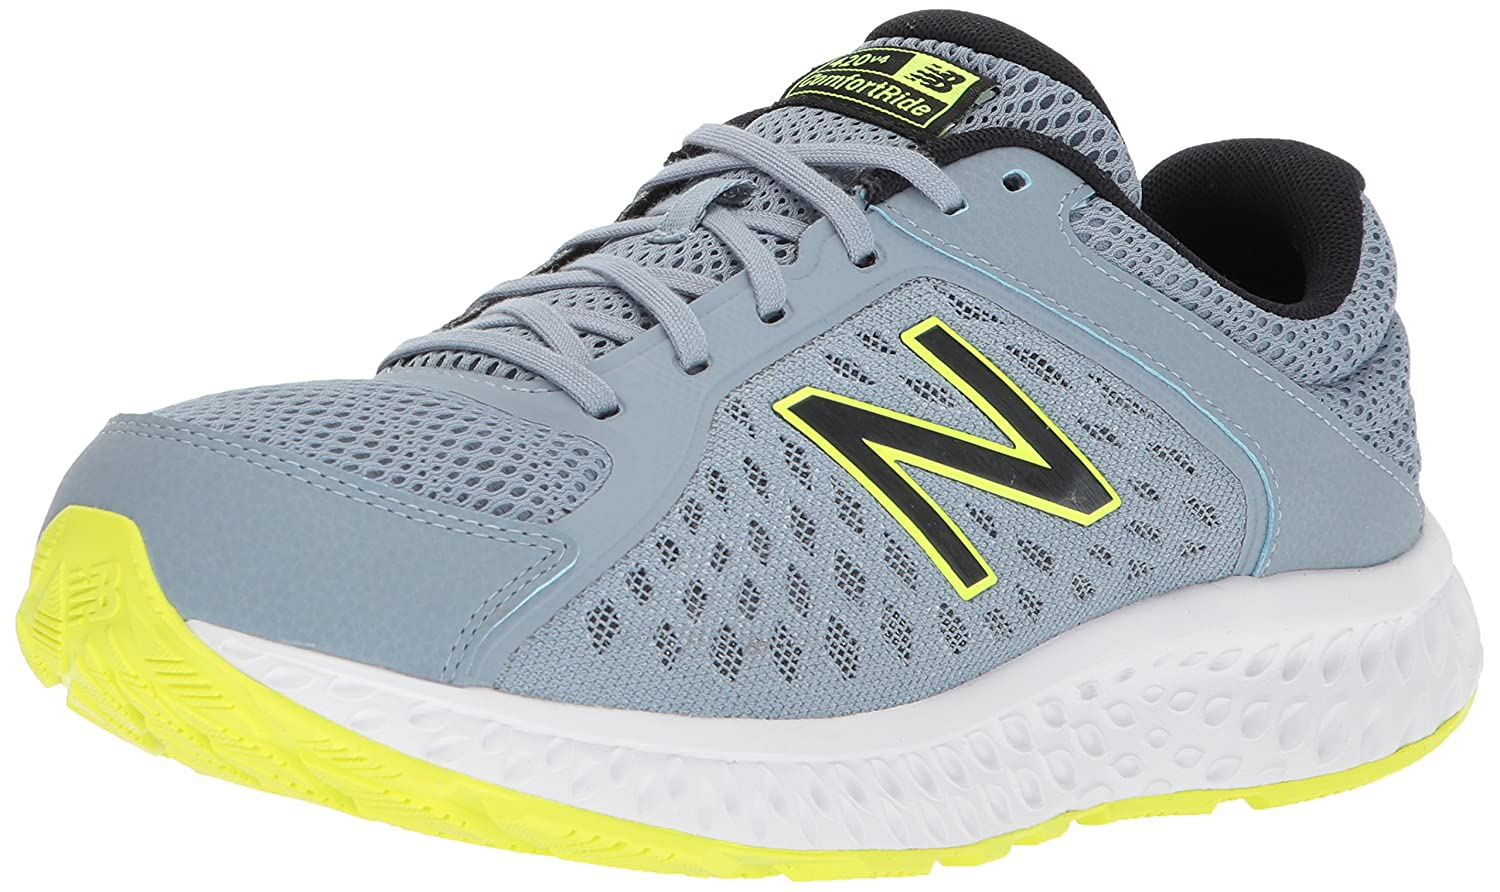 New Balance Men's 420v4 Cushioning Running Shoe B06XRVRFMP 14 4E US|Grey/Black